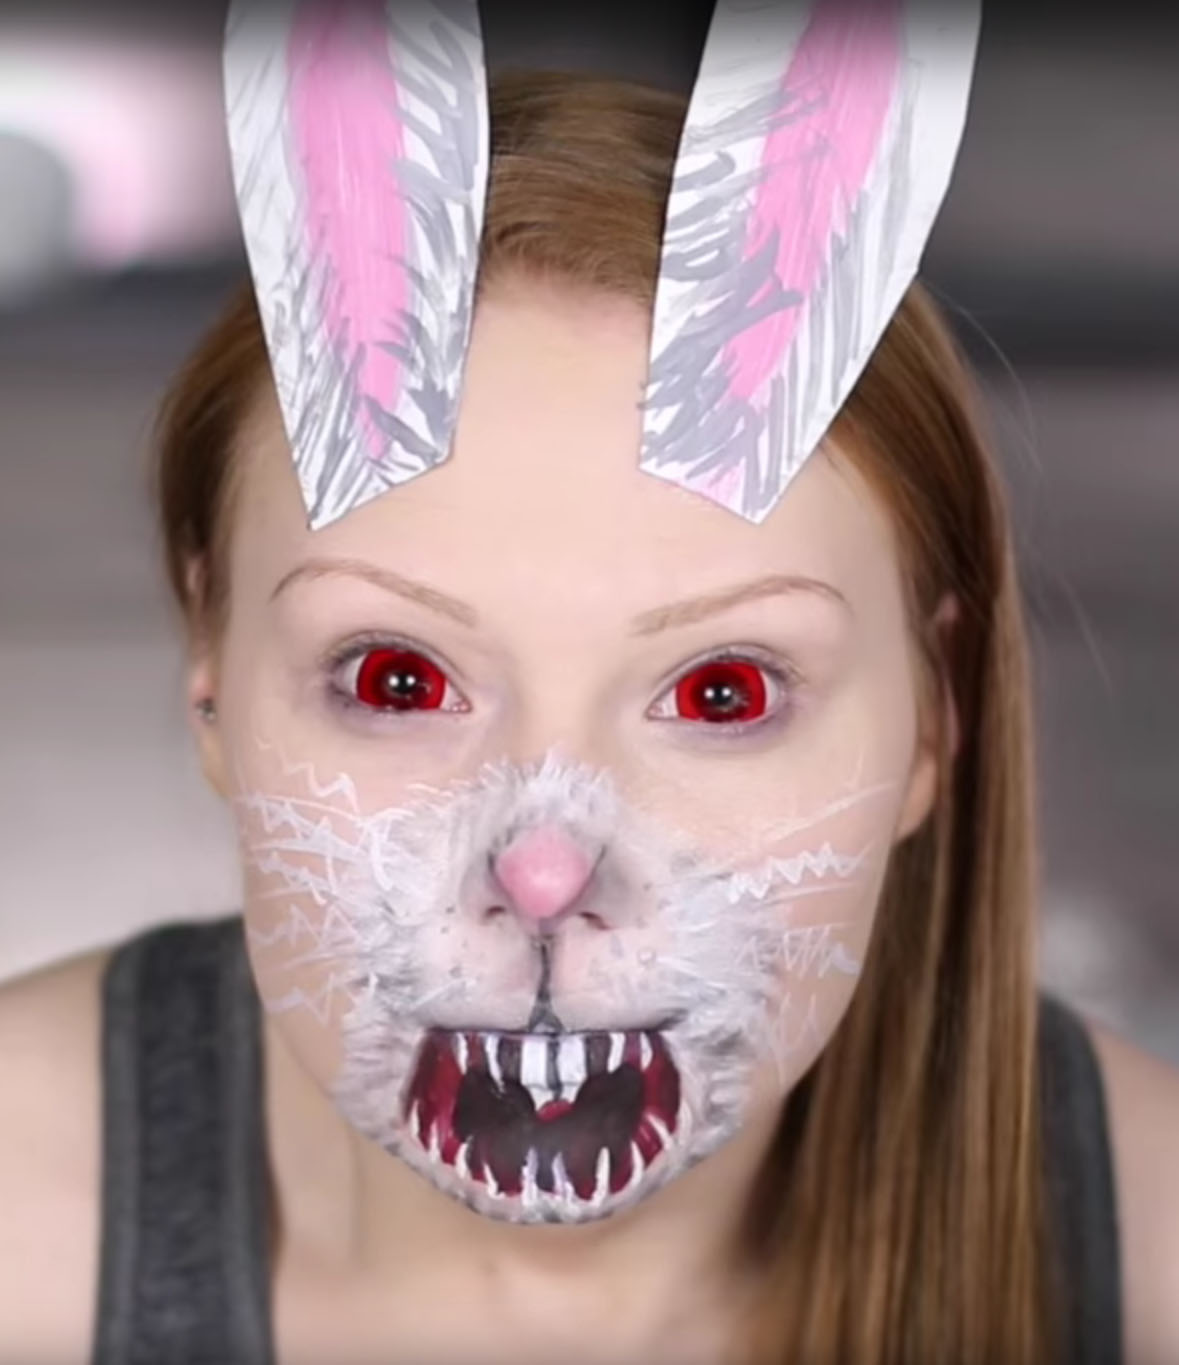 Uncategorized Bunny Nose Face Paint 15 diy snapchat filter costumes best ideas for makeup halloween costumes